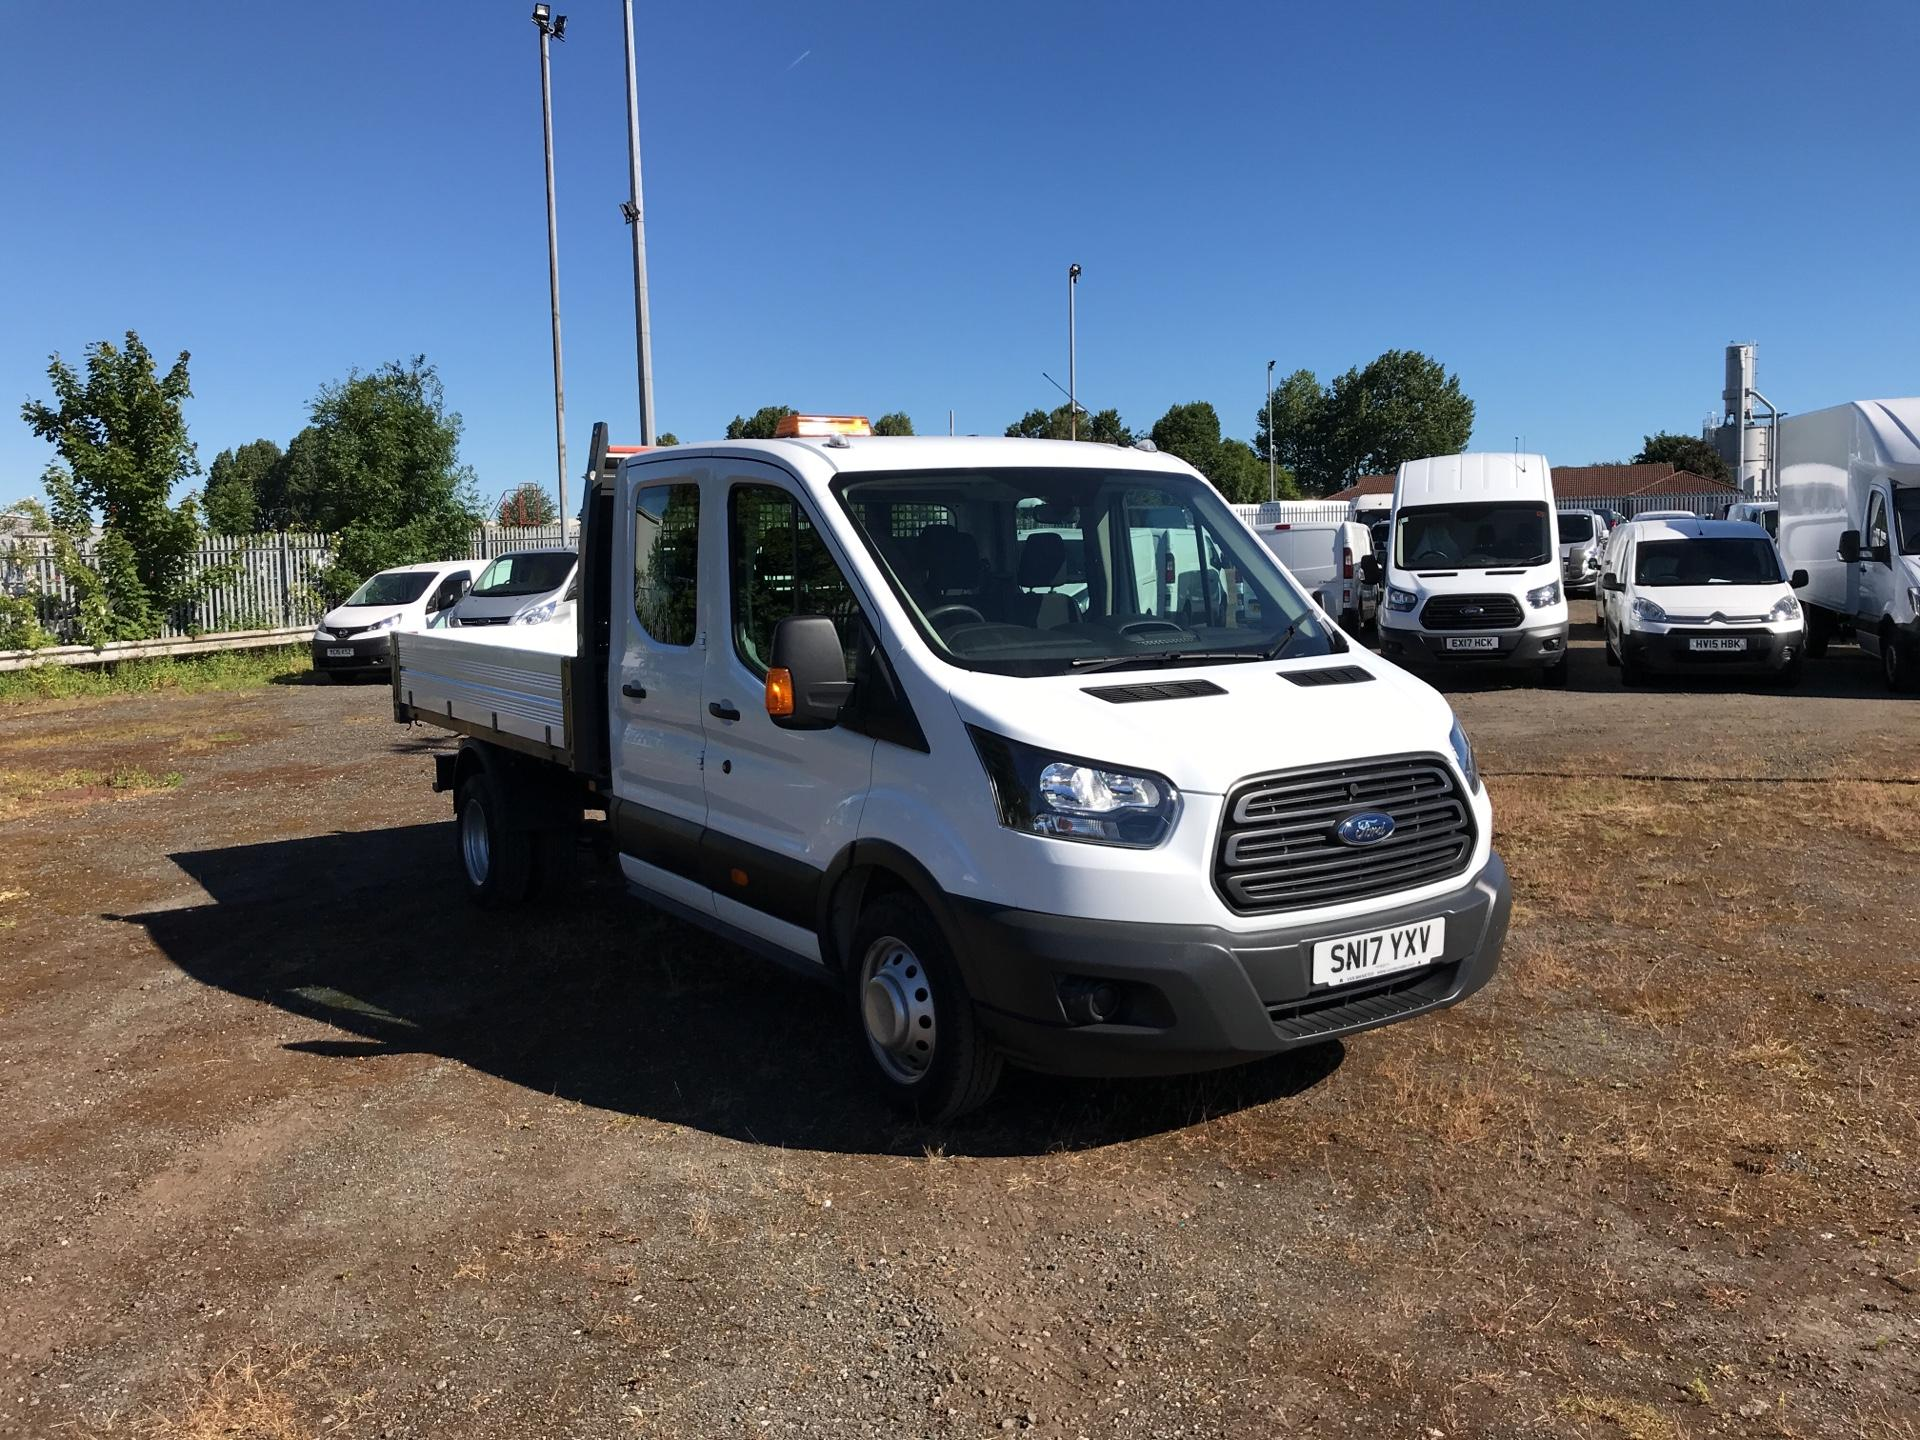 2017 Ford Transit 2.2 T350 DOUBLE CAB DROPSIDE 125PS (SN17YXV)